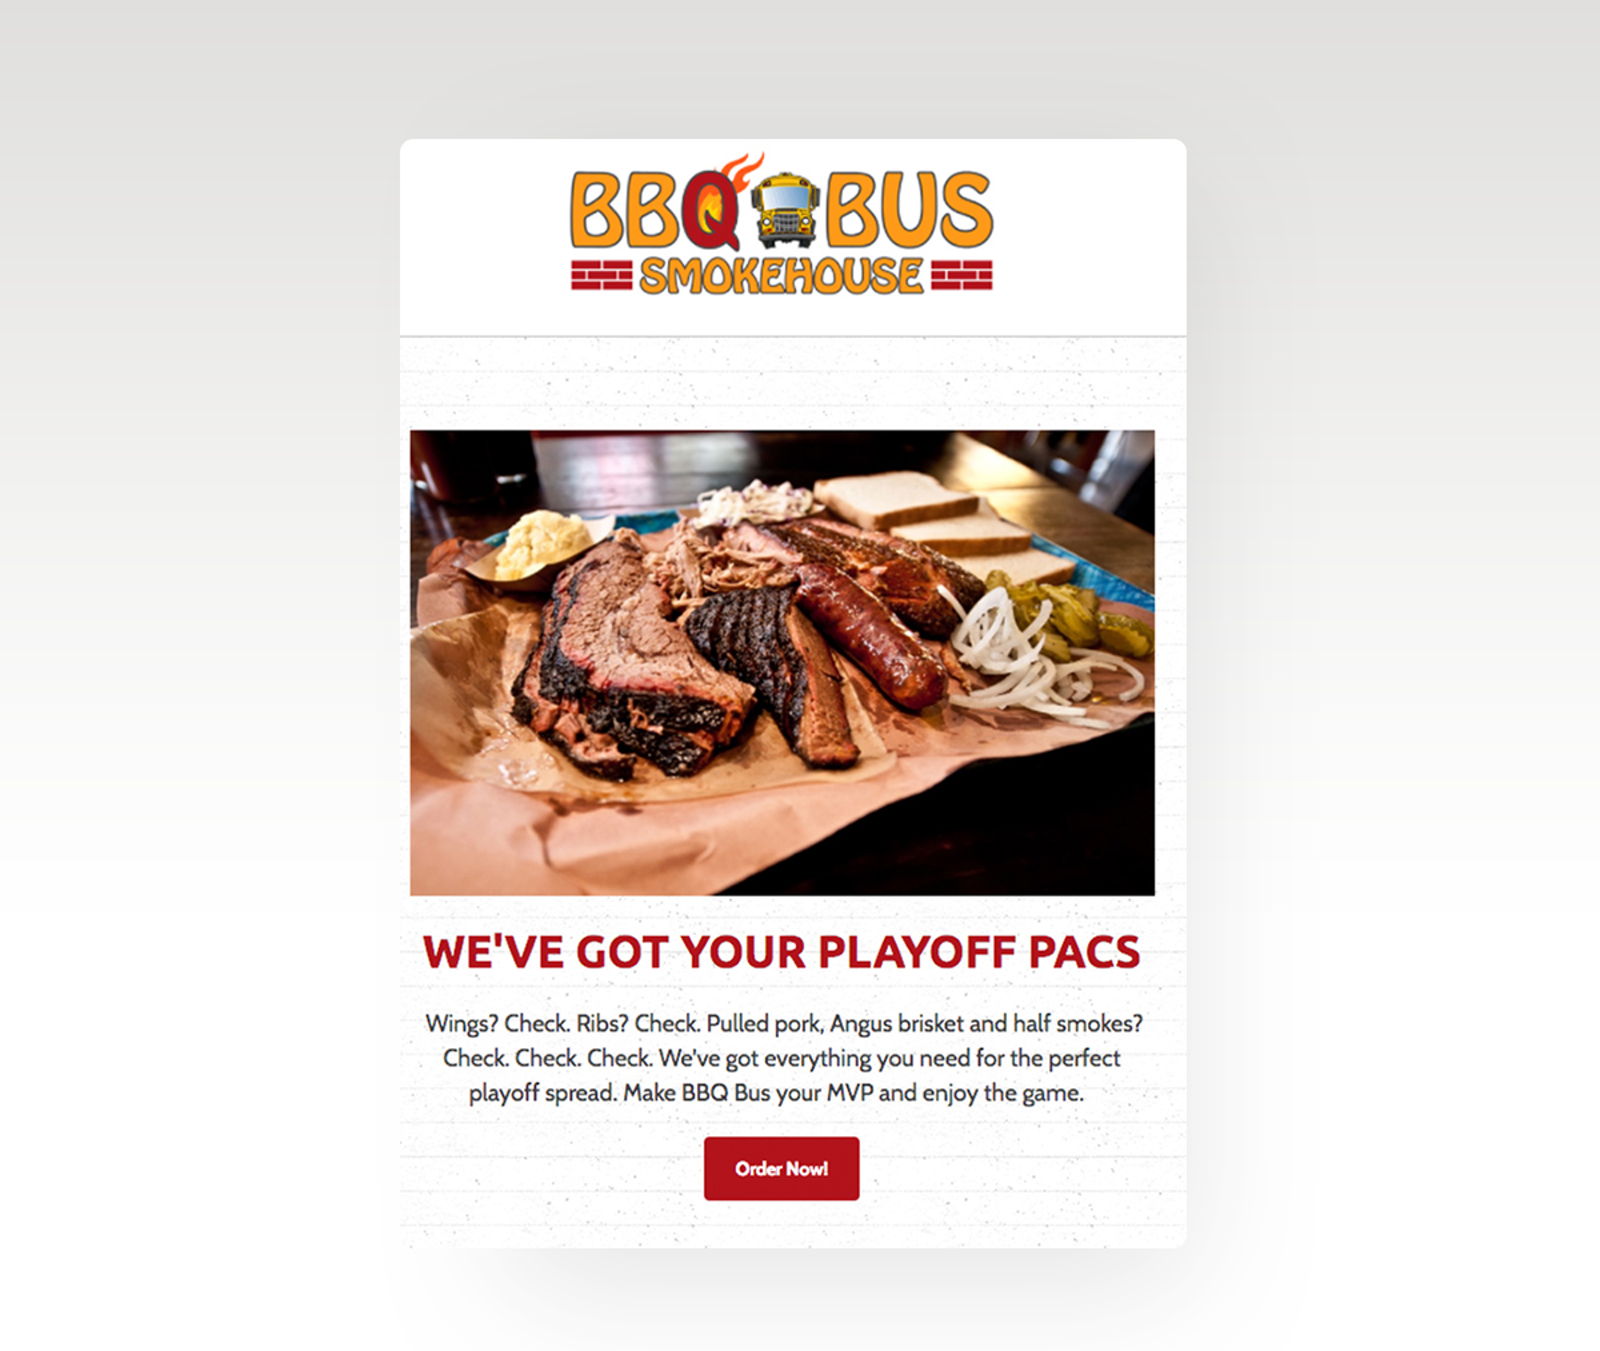 BBQ Bus email